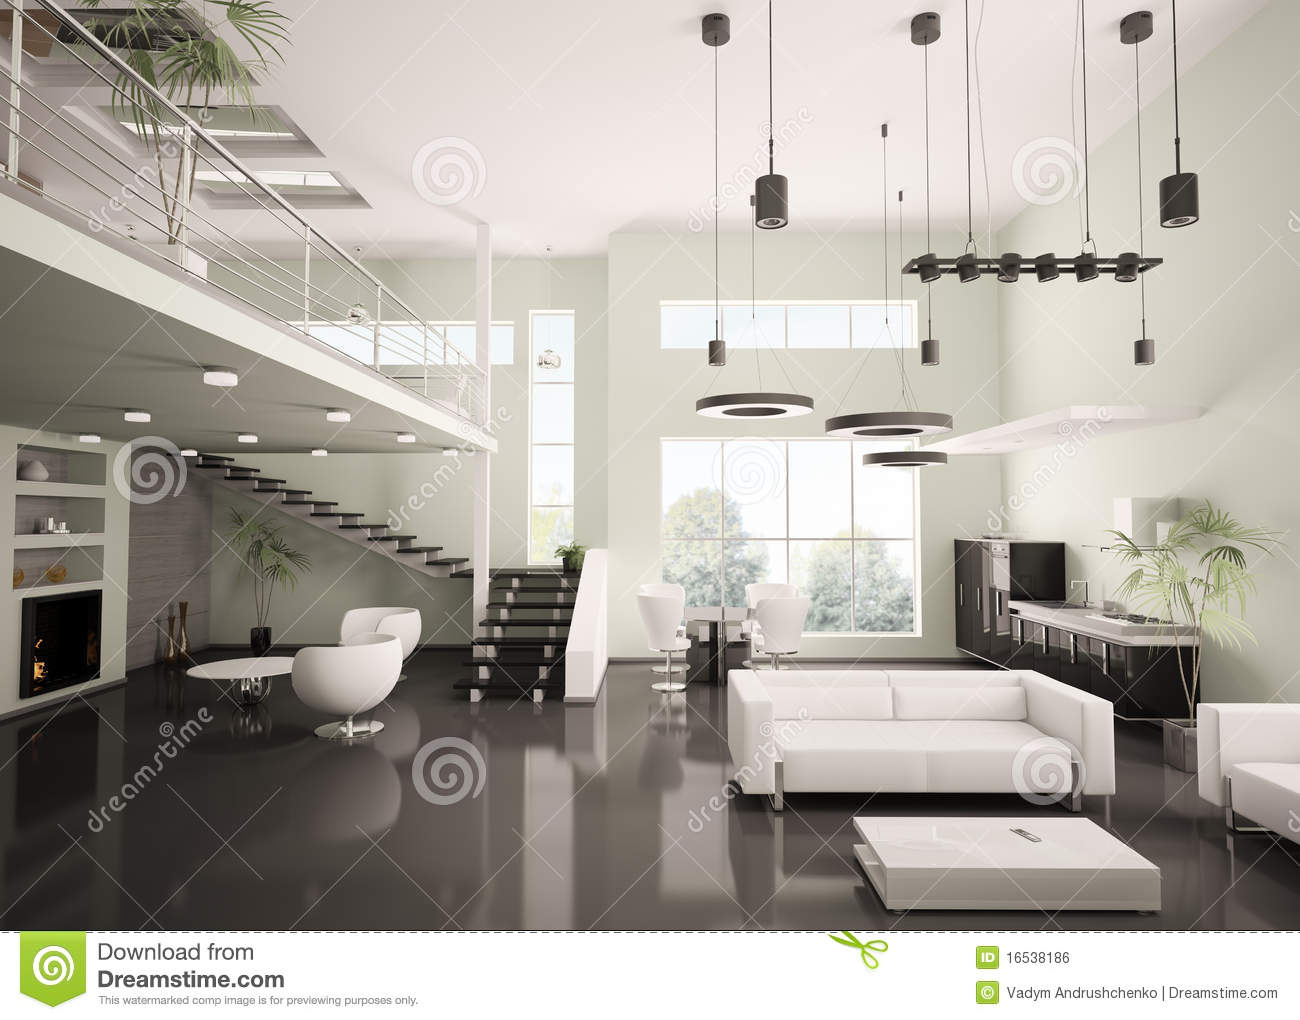 Modern Apartment Interior 3d Render Royalty Free Stock Image Image 16538186